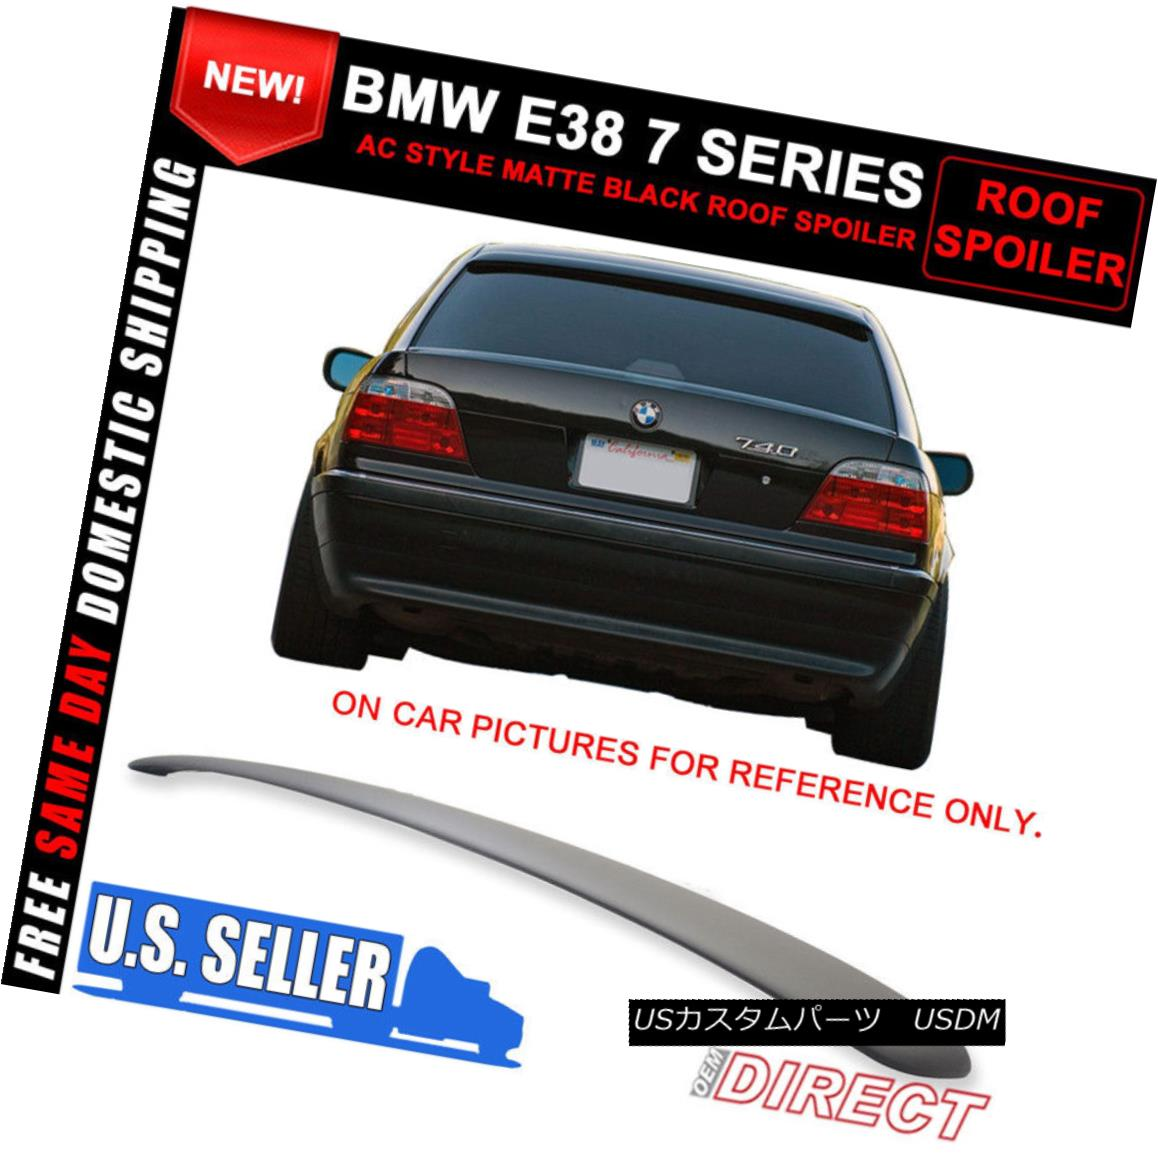 外装・エアロパーツ, その他  For 95-02 BMW E38 7 Series AC Style Roof Spoiler Painted Matte Black - ABS 95-02 BMW E38 7AC - ABS